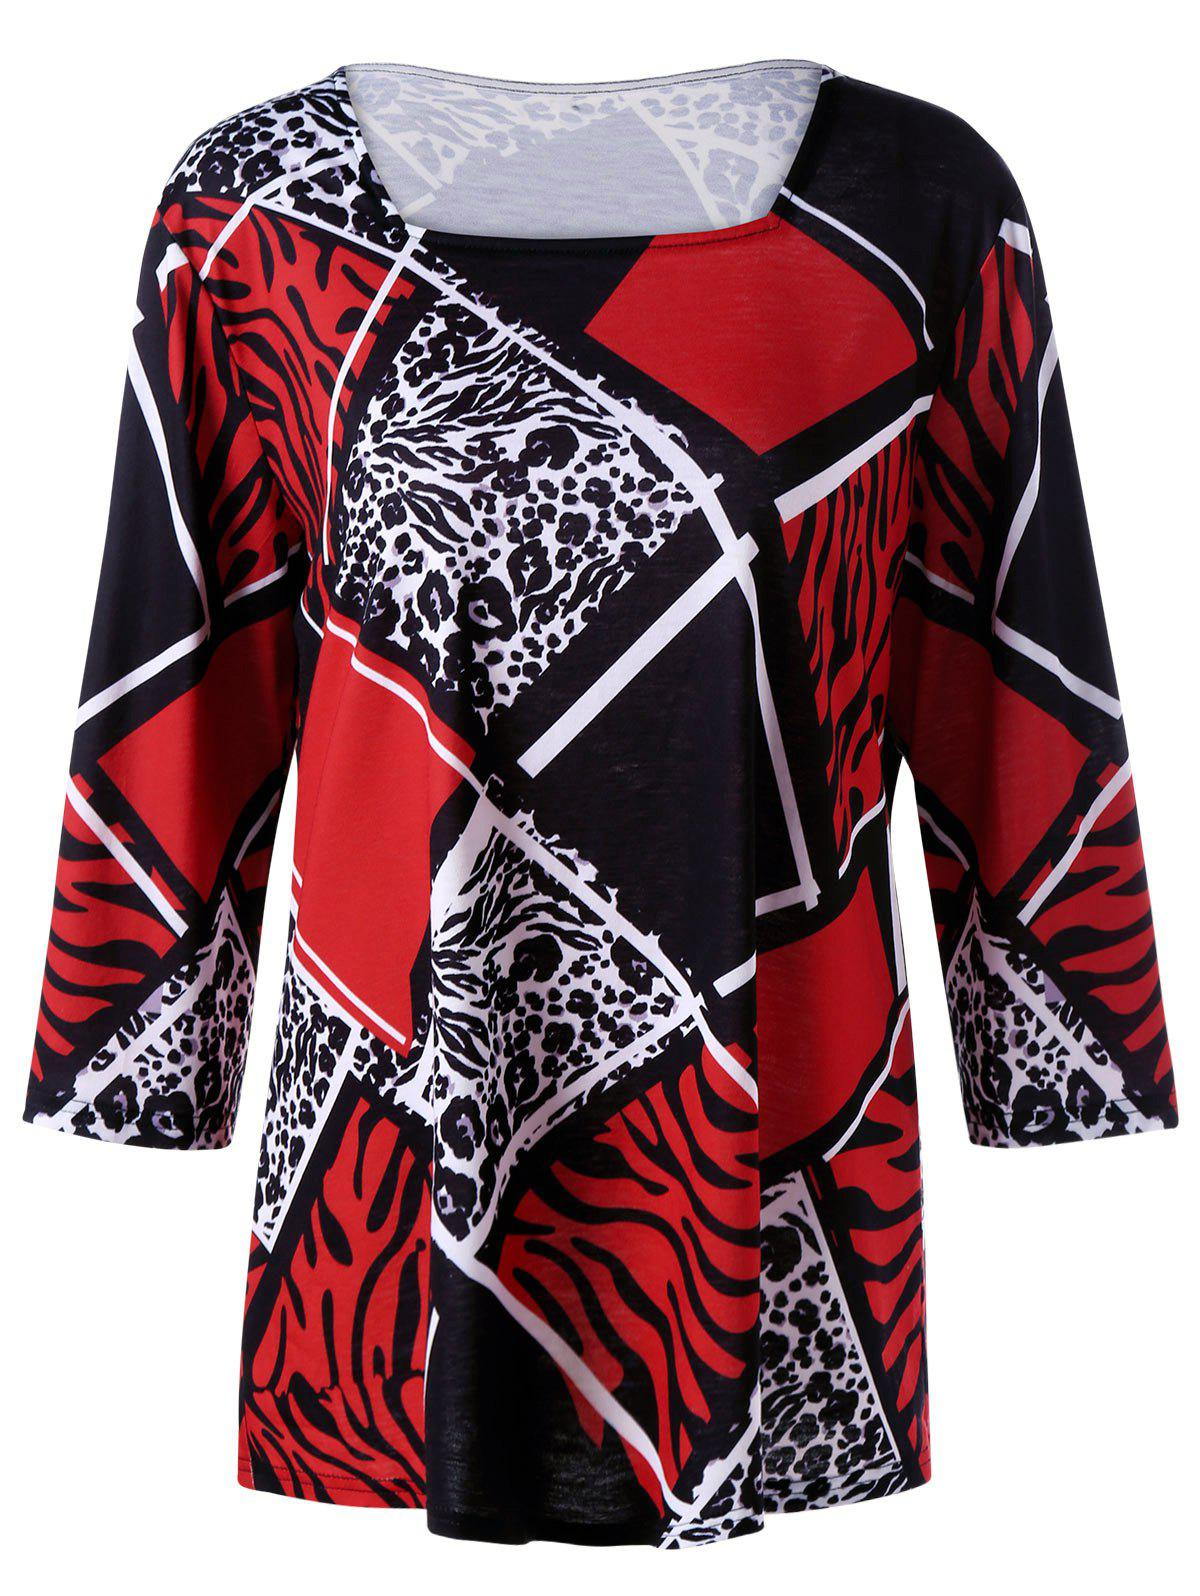 Plus Size Zebra And Plaid T Shirt Black White Red Xl In